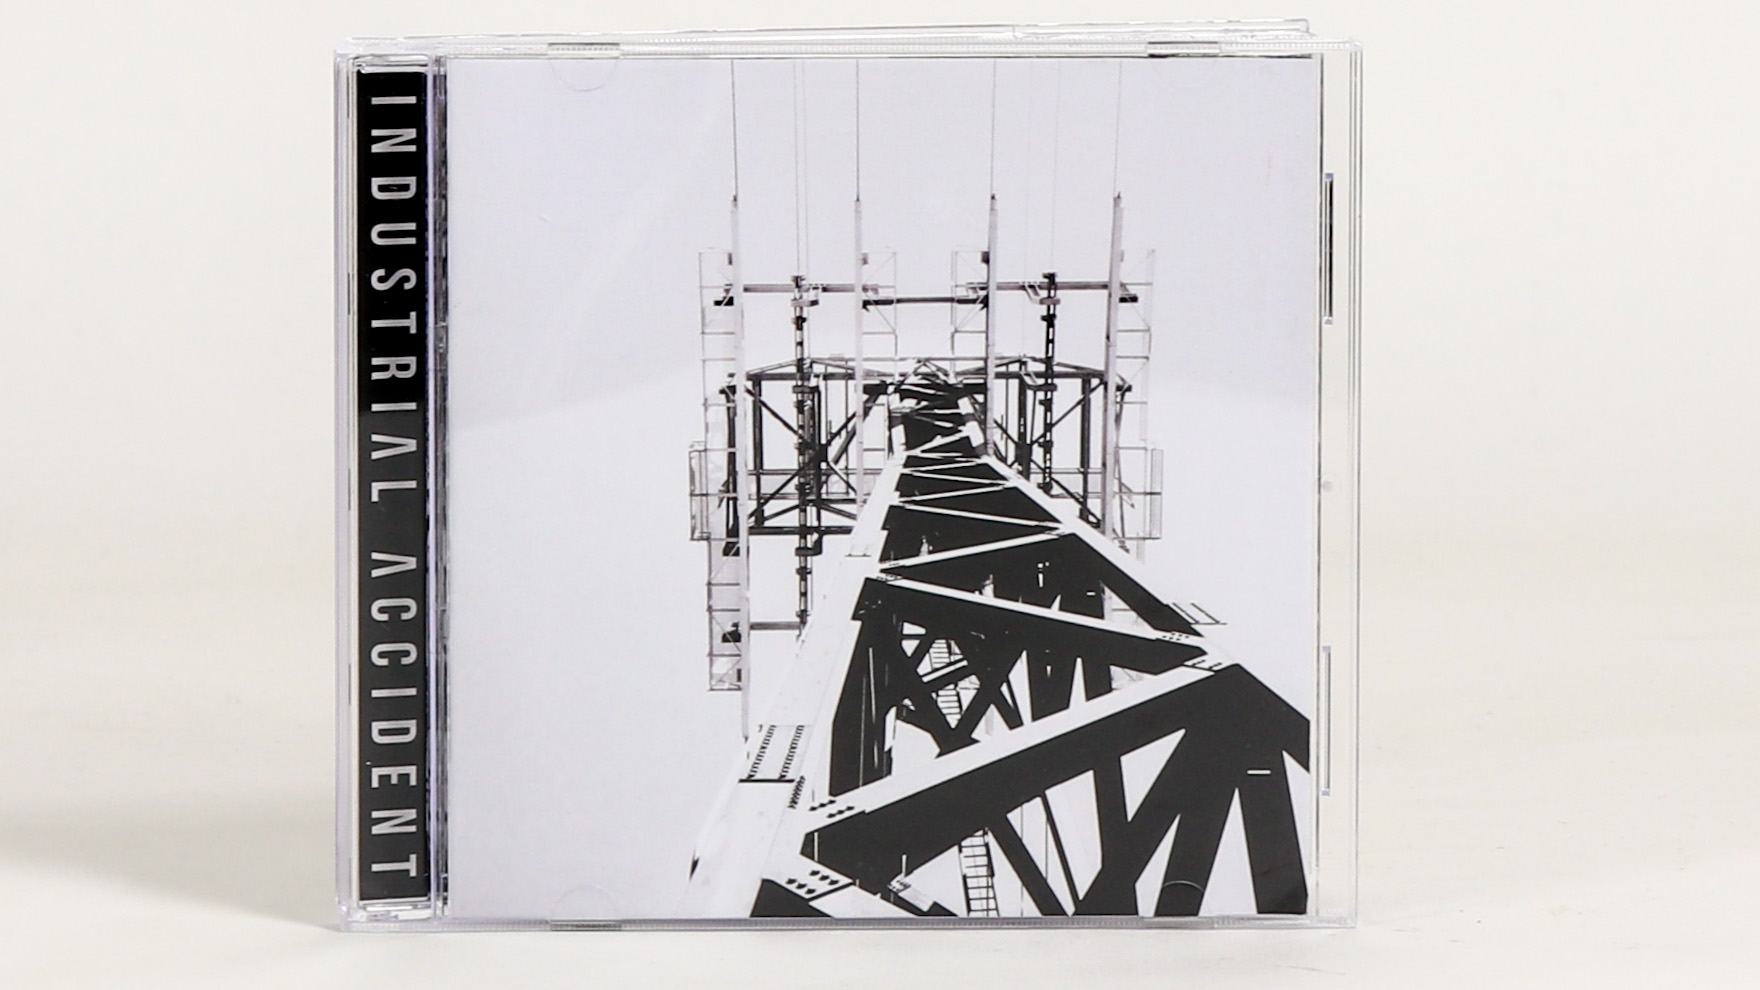 Wax Trax! – Industrial Accident [soundtrack]